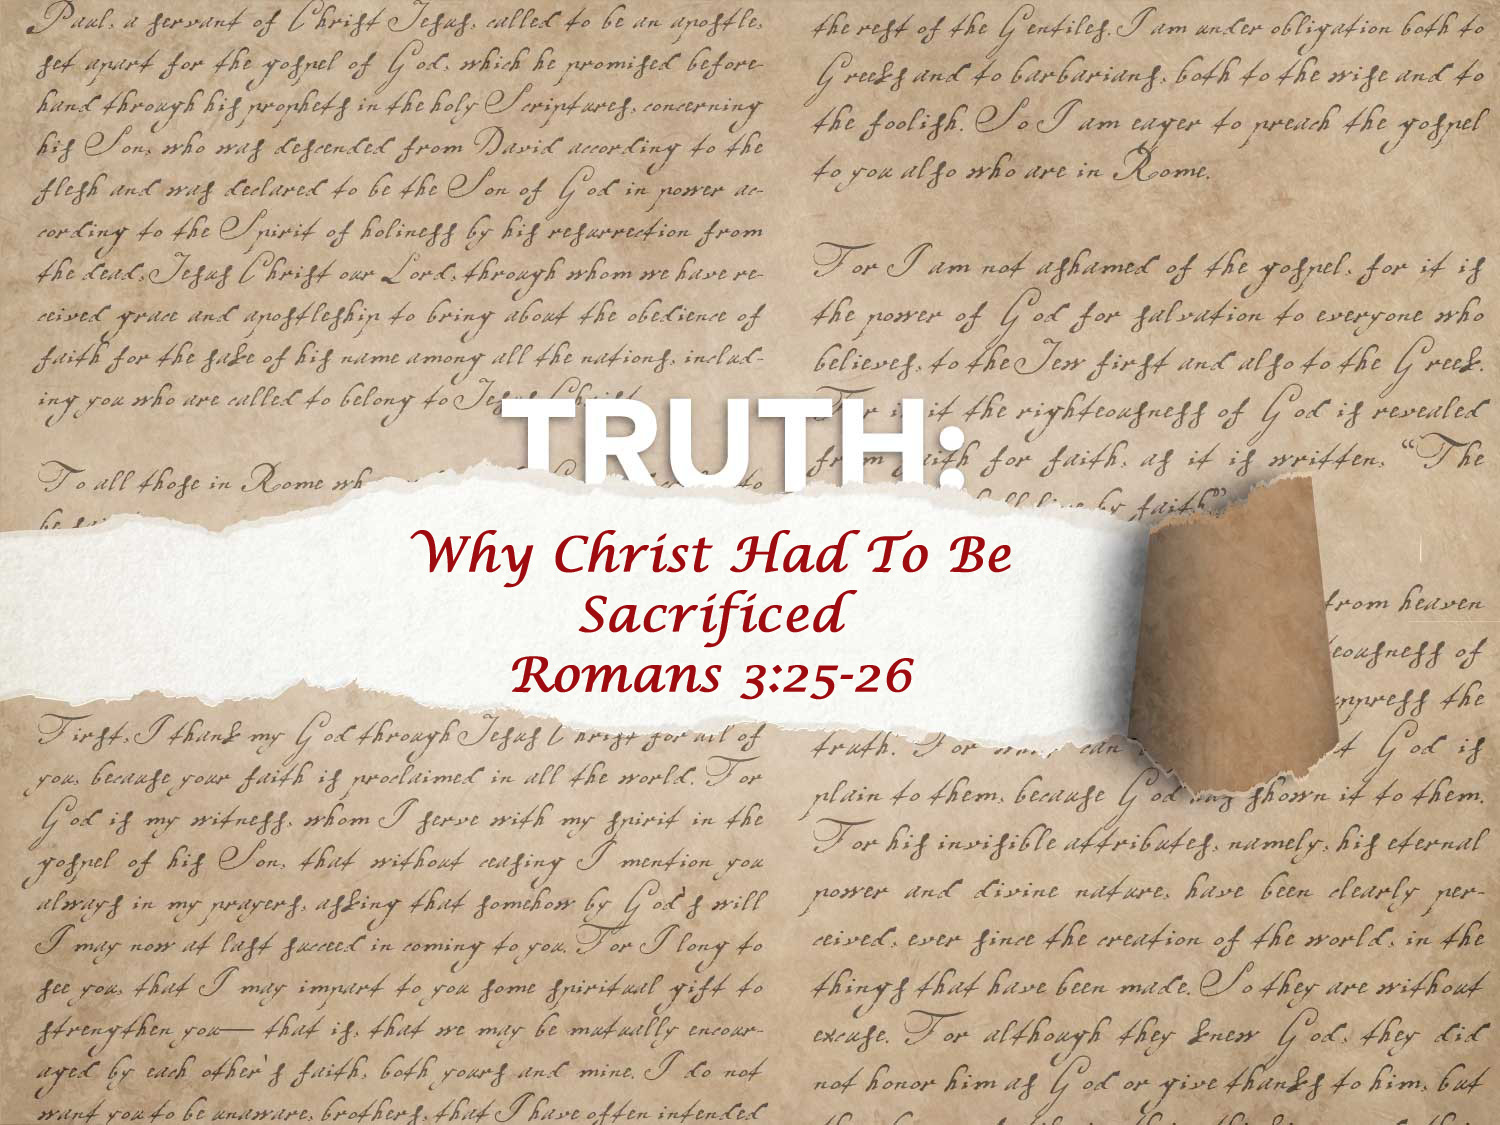 Romans 3:25-26 Why Christ Had To Be Sacrificed